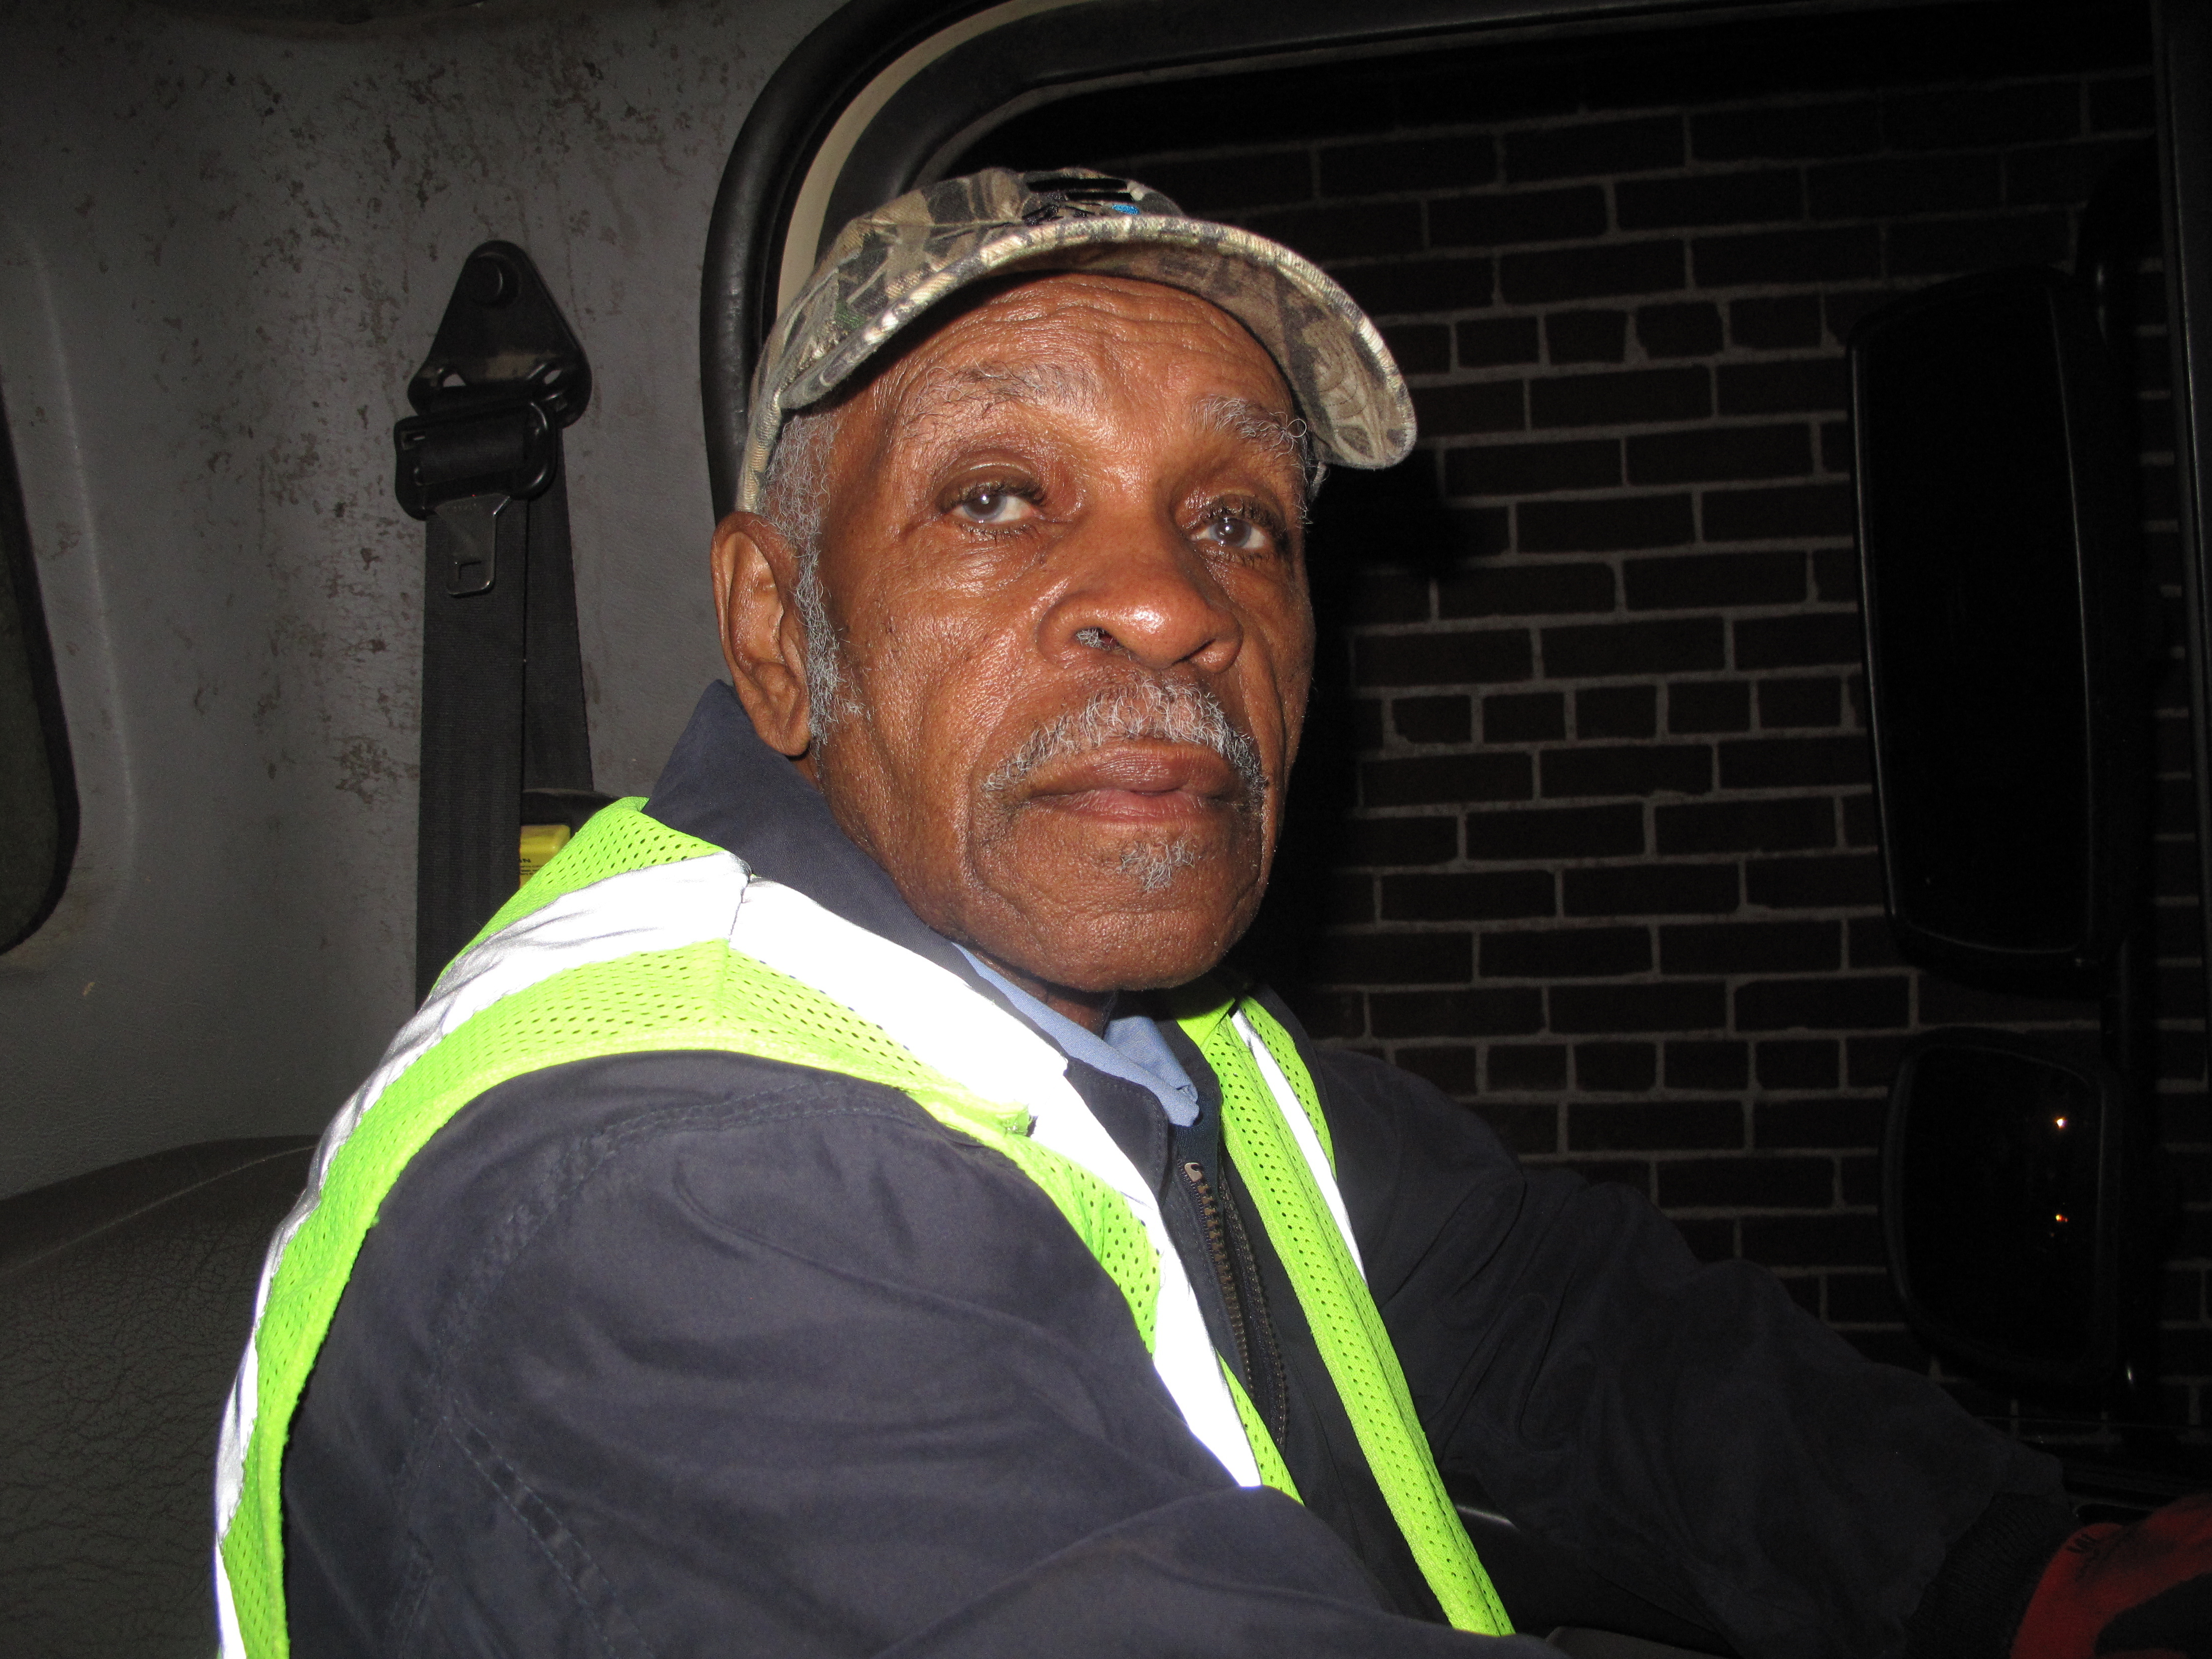 Eighty-six-year-old Elmore Nickelberry is one of the last strike participants still on the job with the Memphis Sanitation Department.